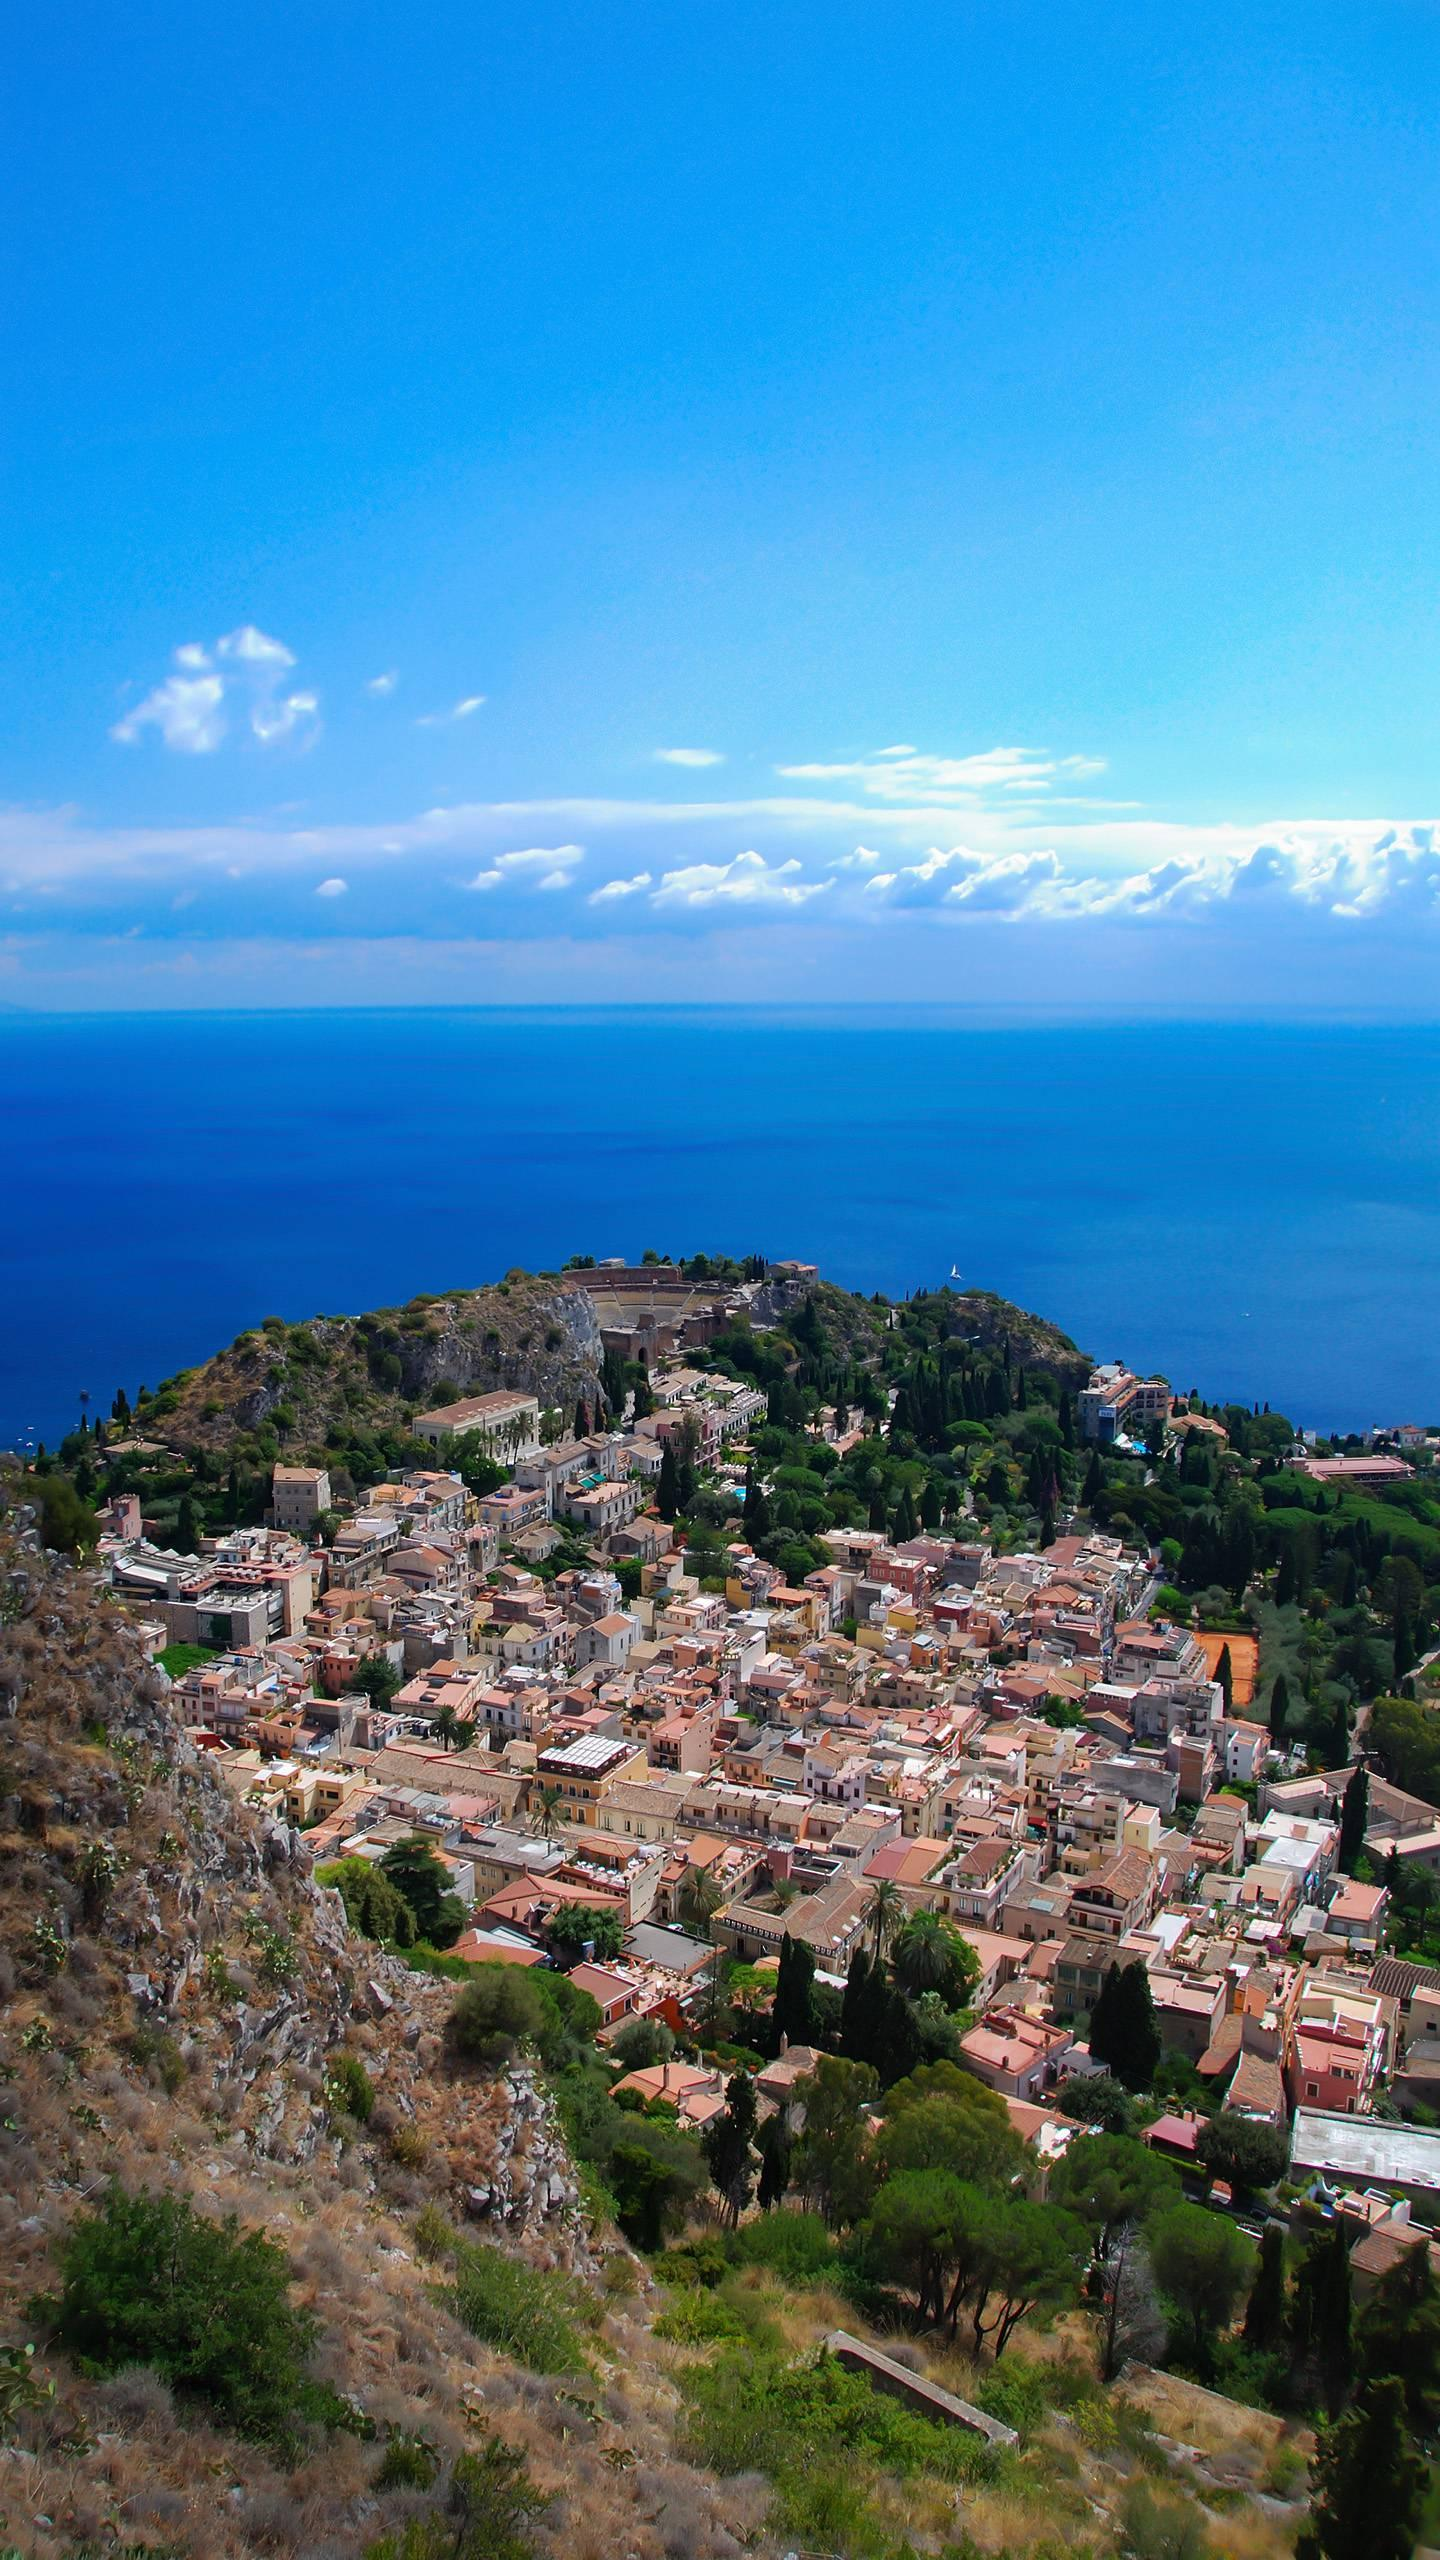 Sicily - Taormina. The beautiful Taormina is the jewel of Sicily, and it is like walking in paradise.